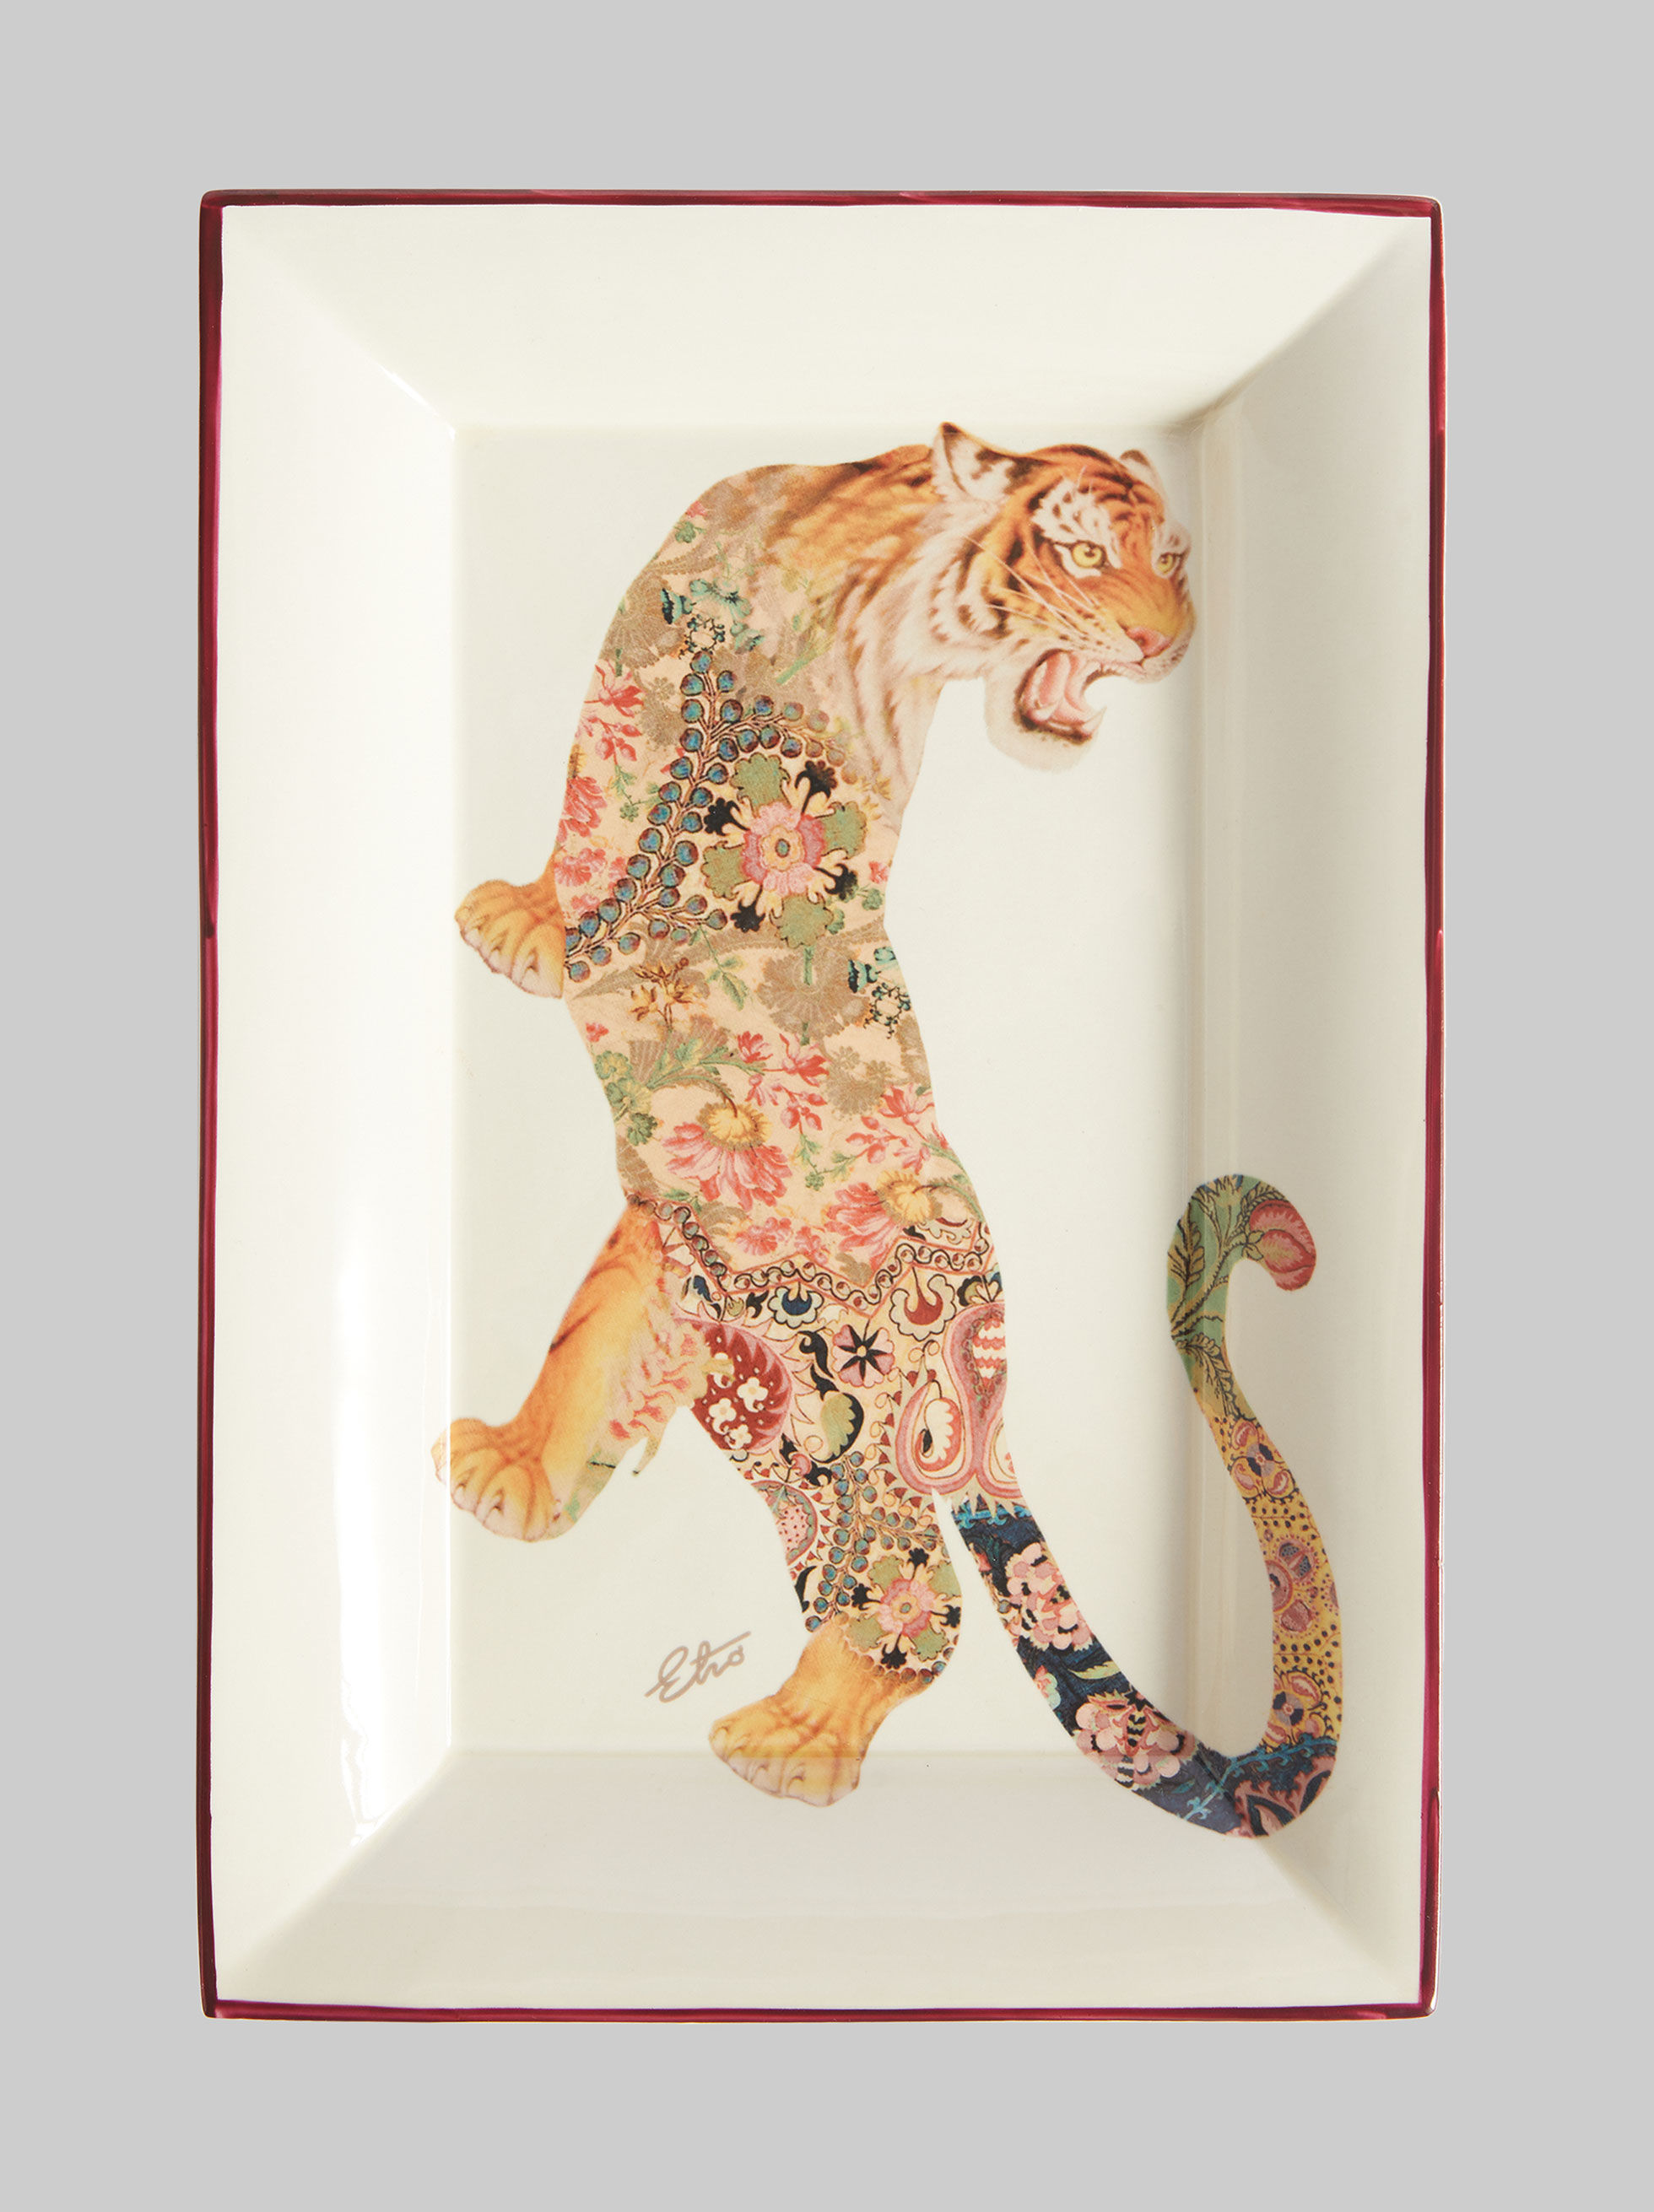 RECTANGULAR CERAMIC TRAY WITH TIGER